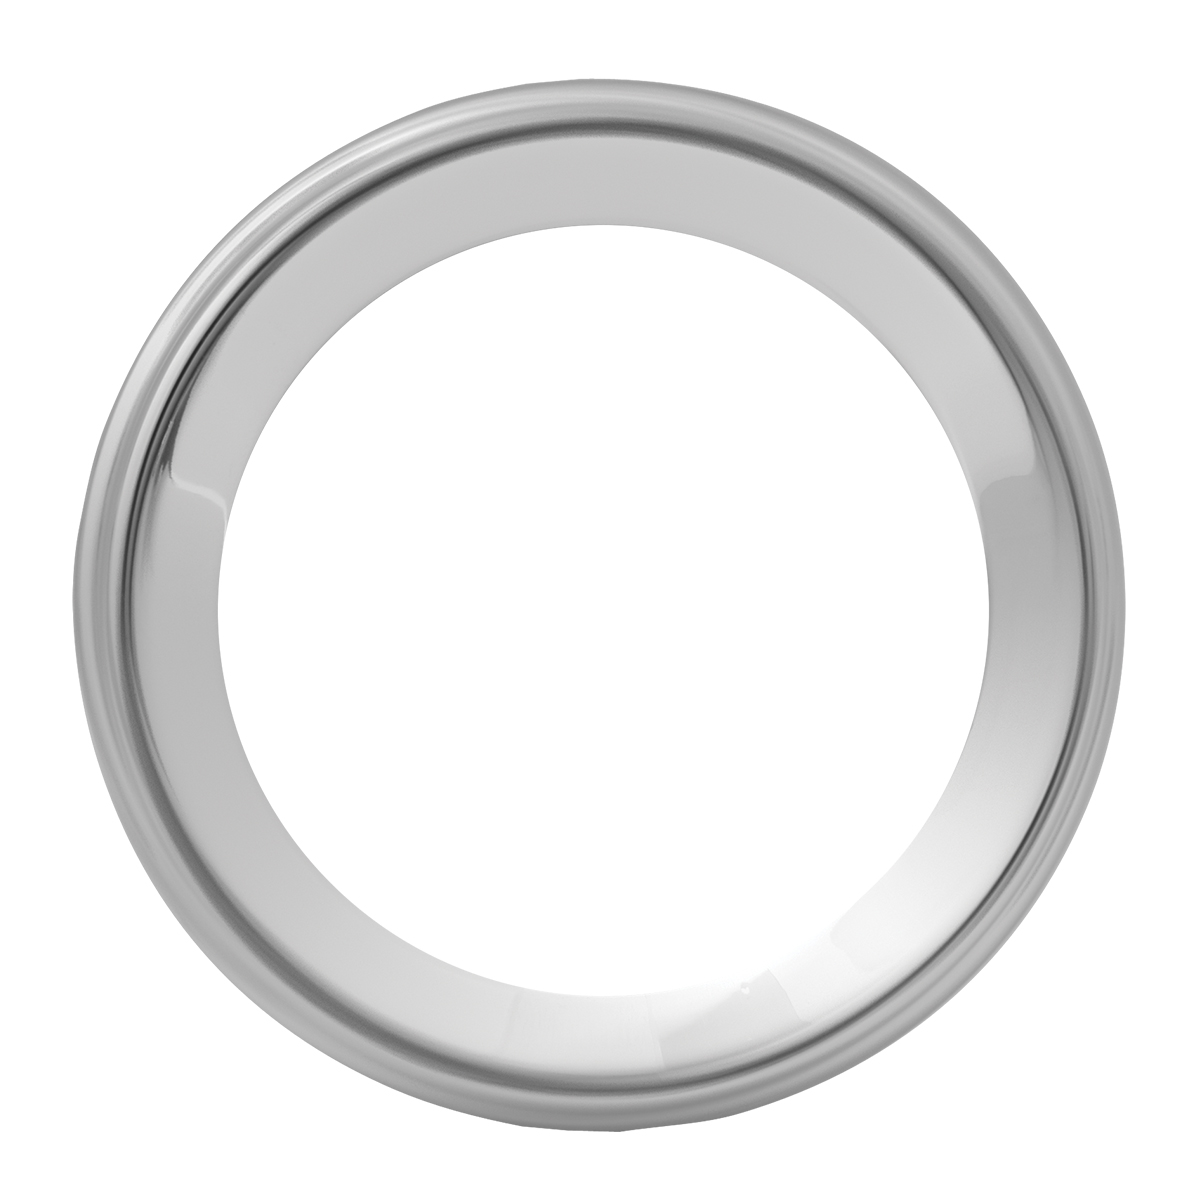 68162 Chrome Steel Small Snap-On Gauge Cover for Pete